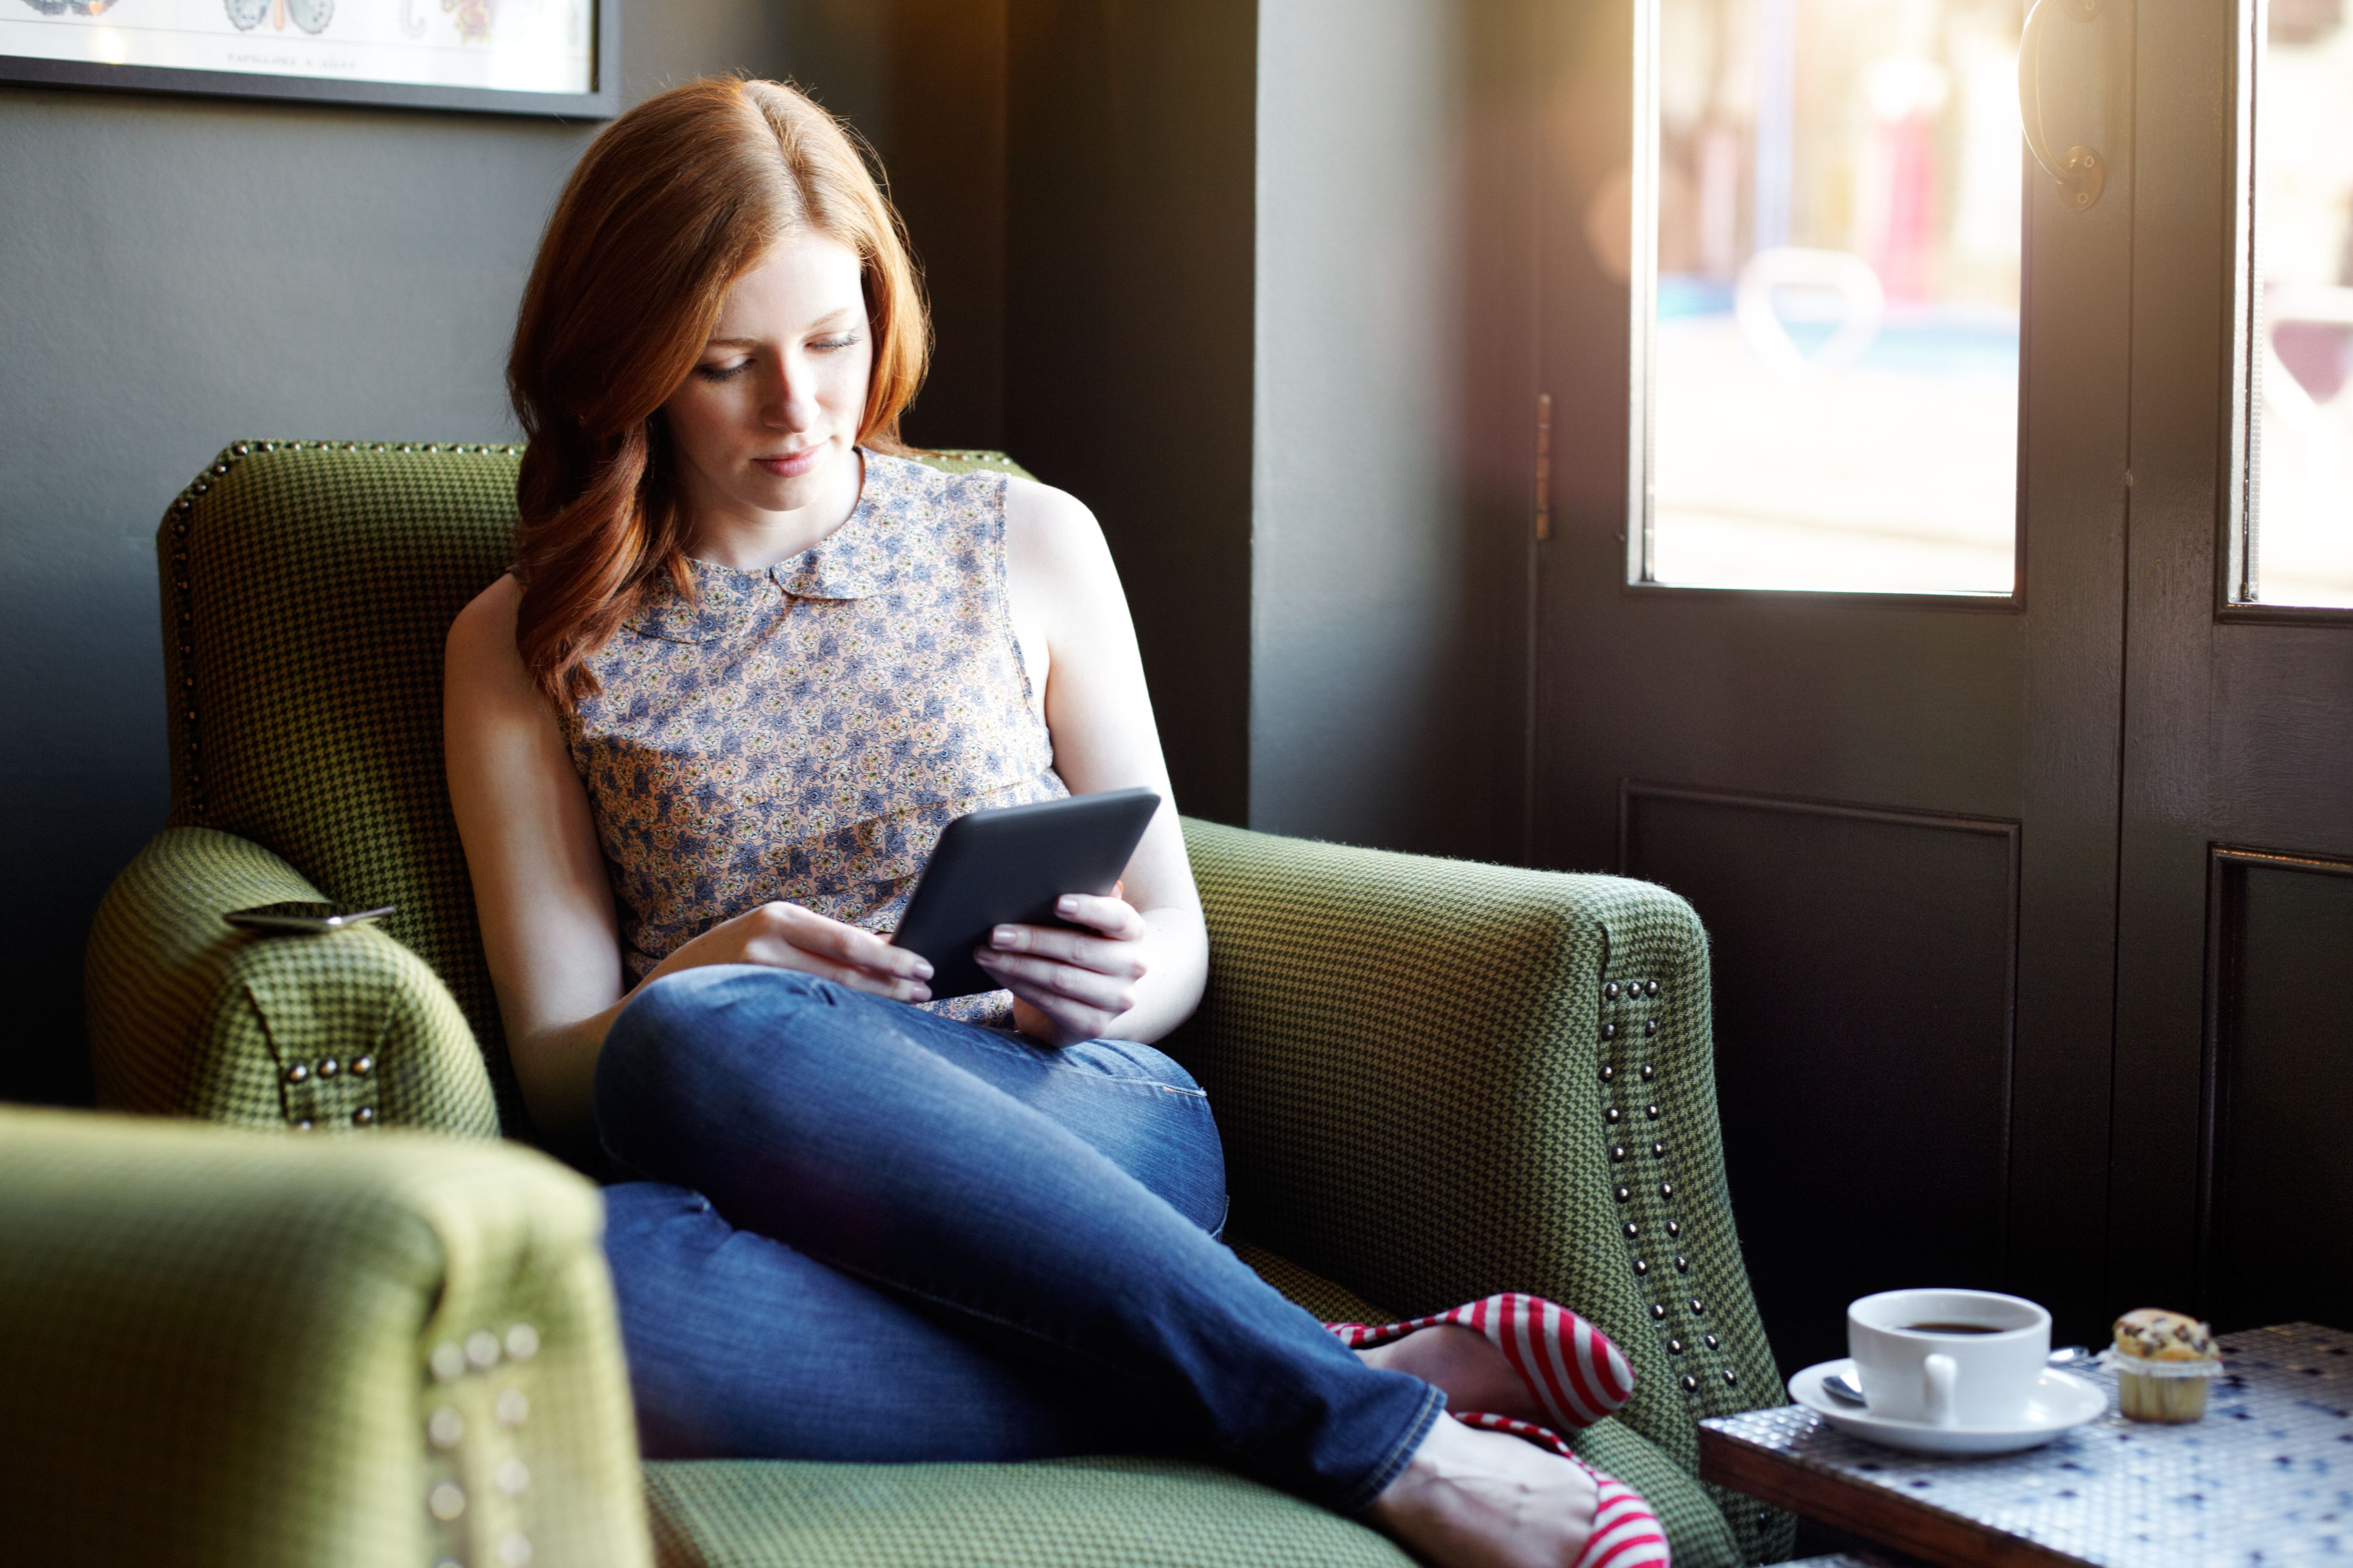 Woman reading ebook on tablet in coffee shop